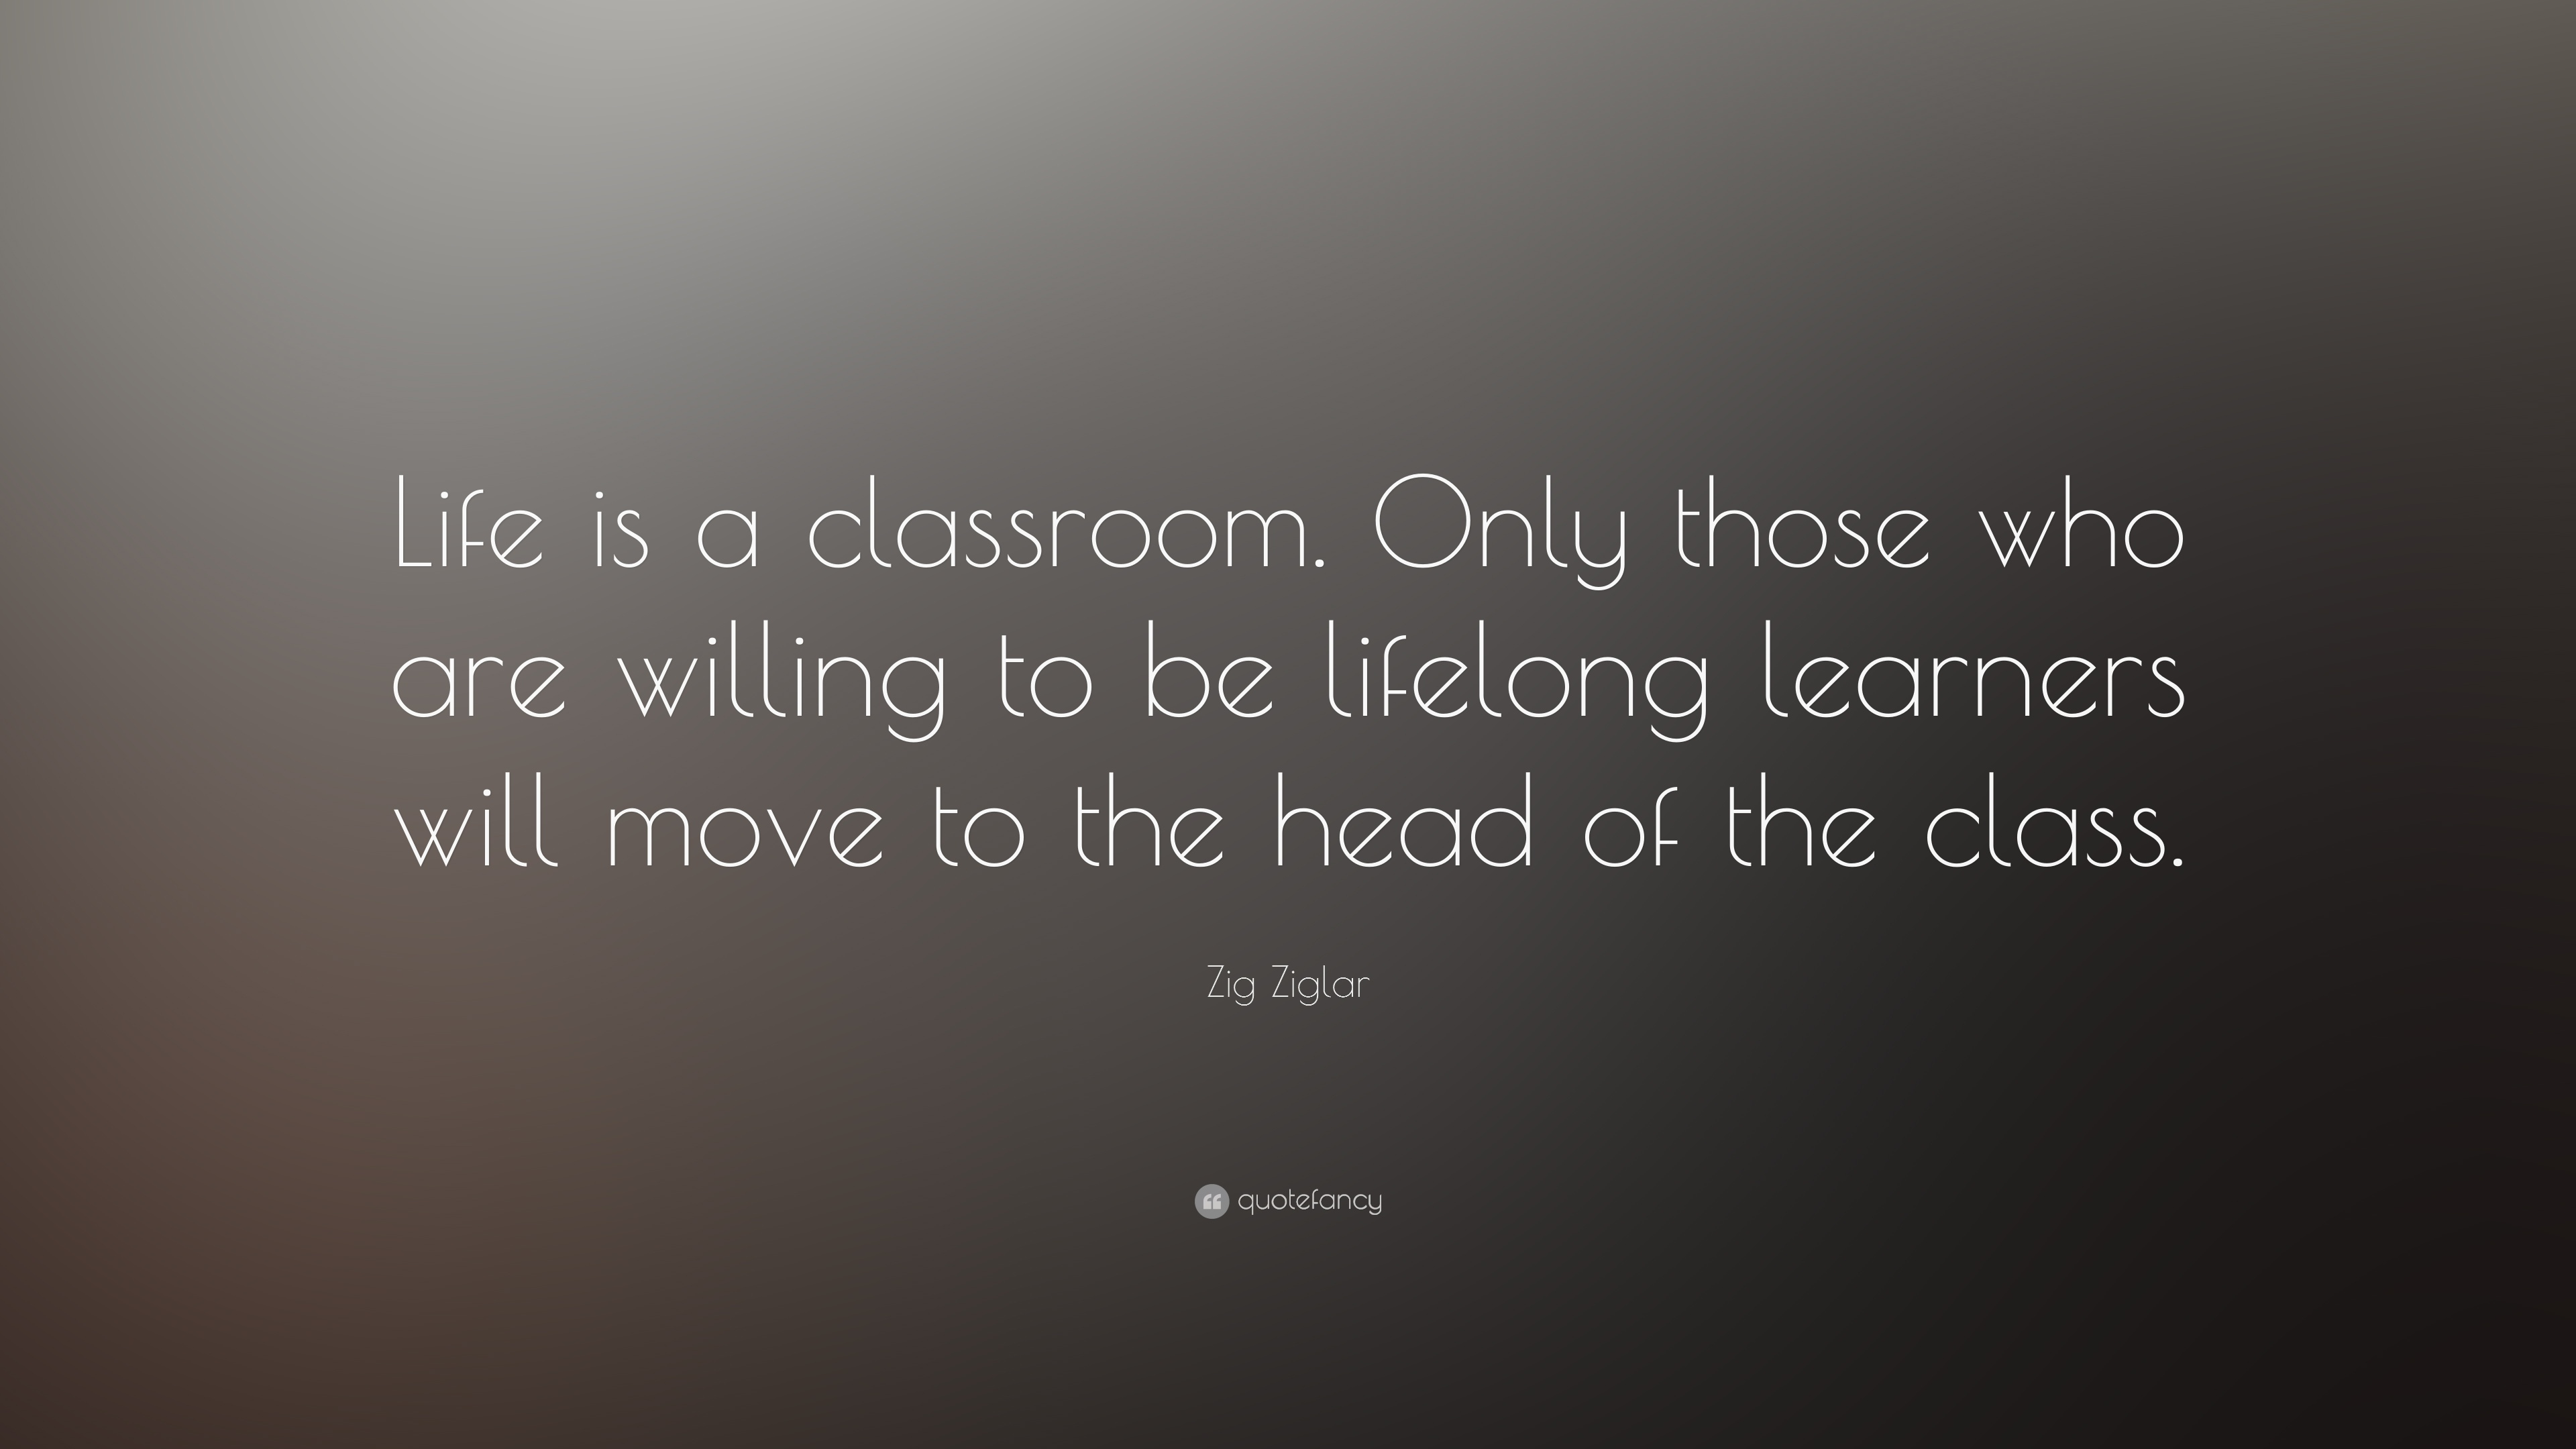 Lifelong Learning Quotes Funny Quotes About Lifelong Learning  Dobre For